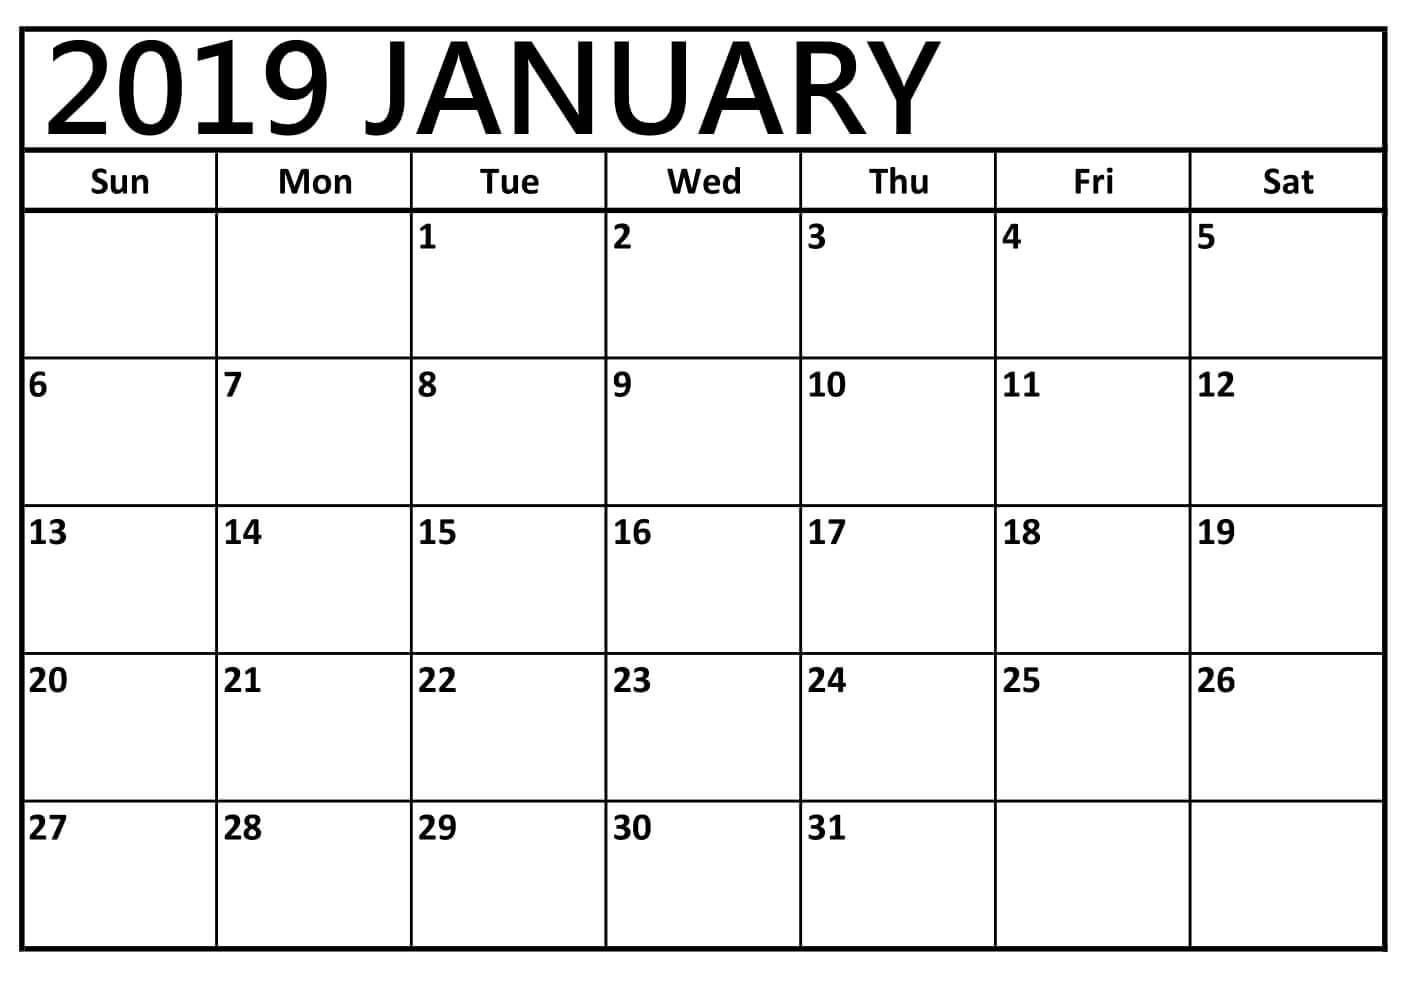 January 2019 Calendar Customized Template